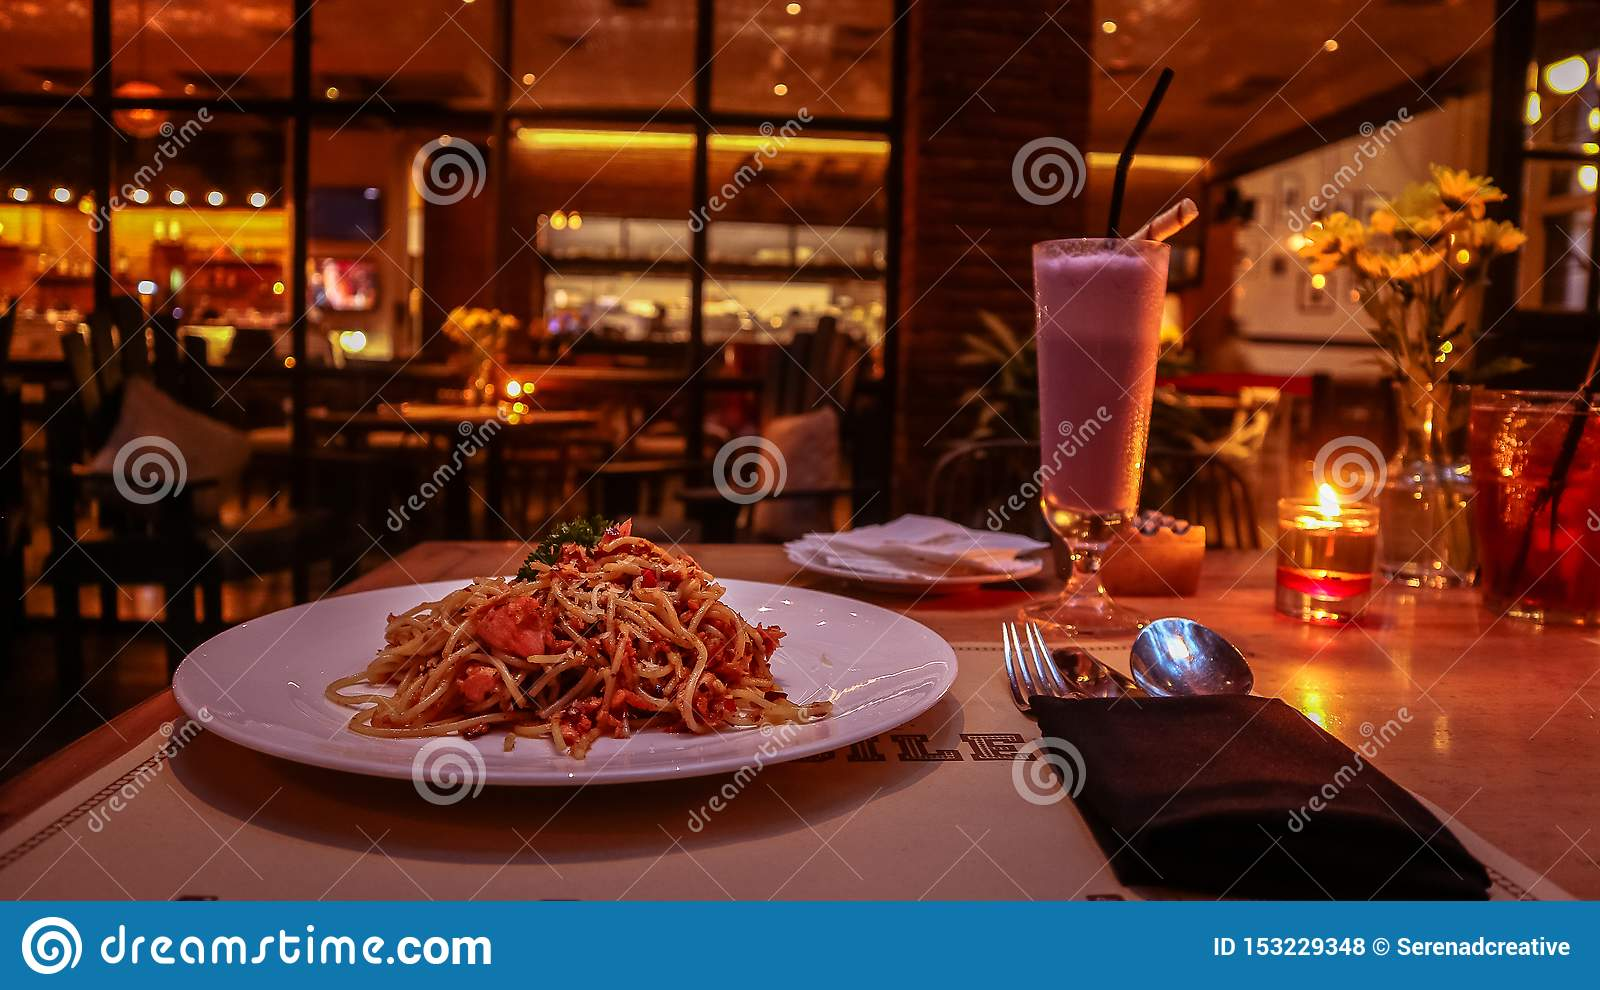 A couple enjoying romantic candle light dinner with aglio olio on the table